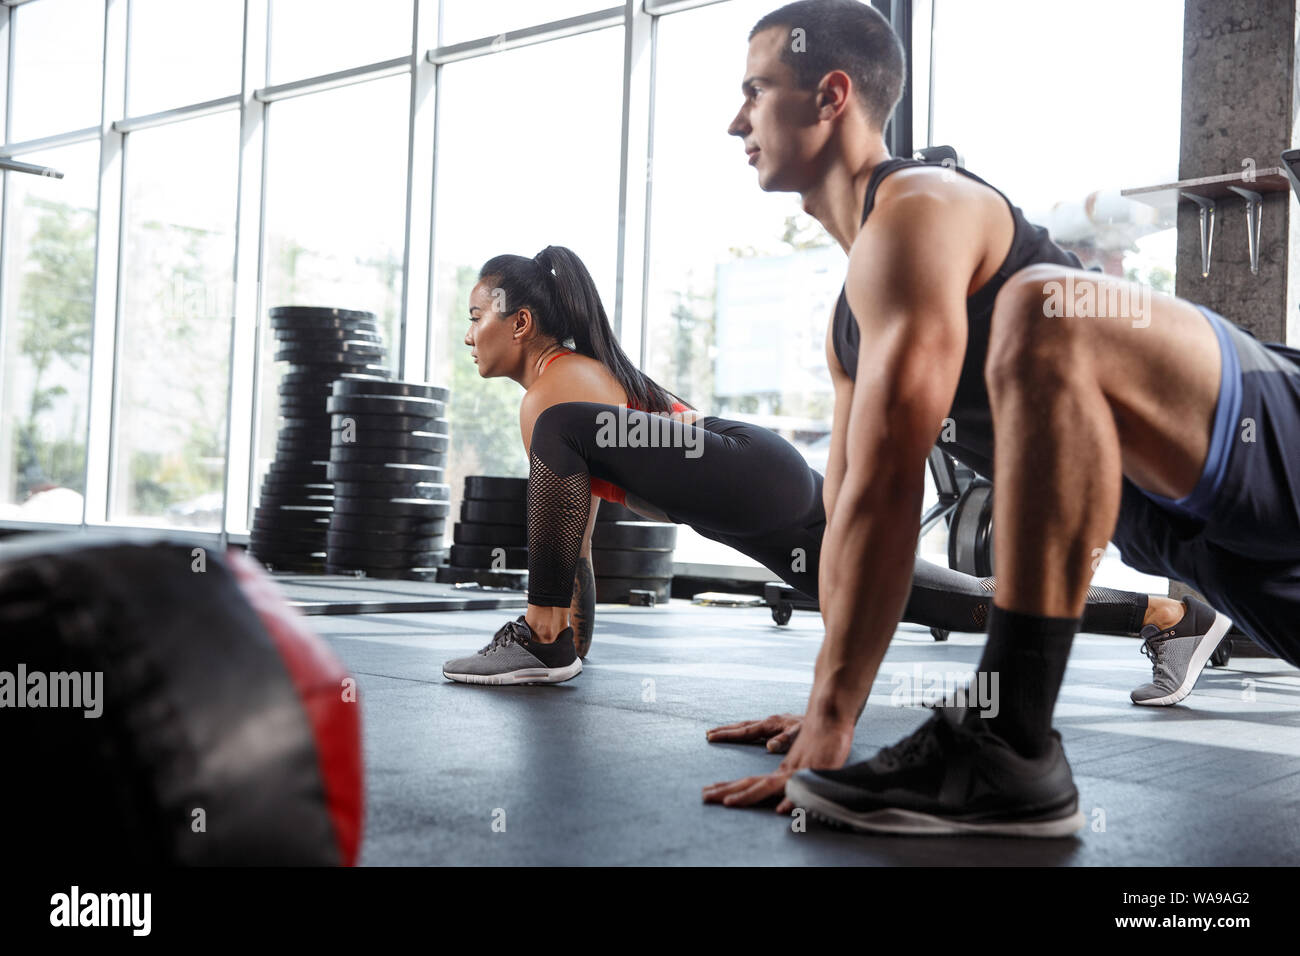 A Muscular Athletes Doing Workout At The Gym Gymnastics Training Fitness Workout Flexibility Active And Healthy Lifestyle Youth Bodybuilding Training In Lunges And Stretching Exercises Stock Photo Alamy